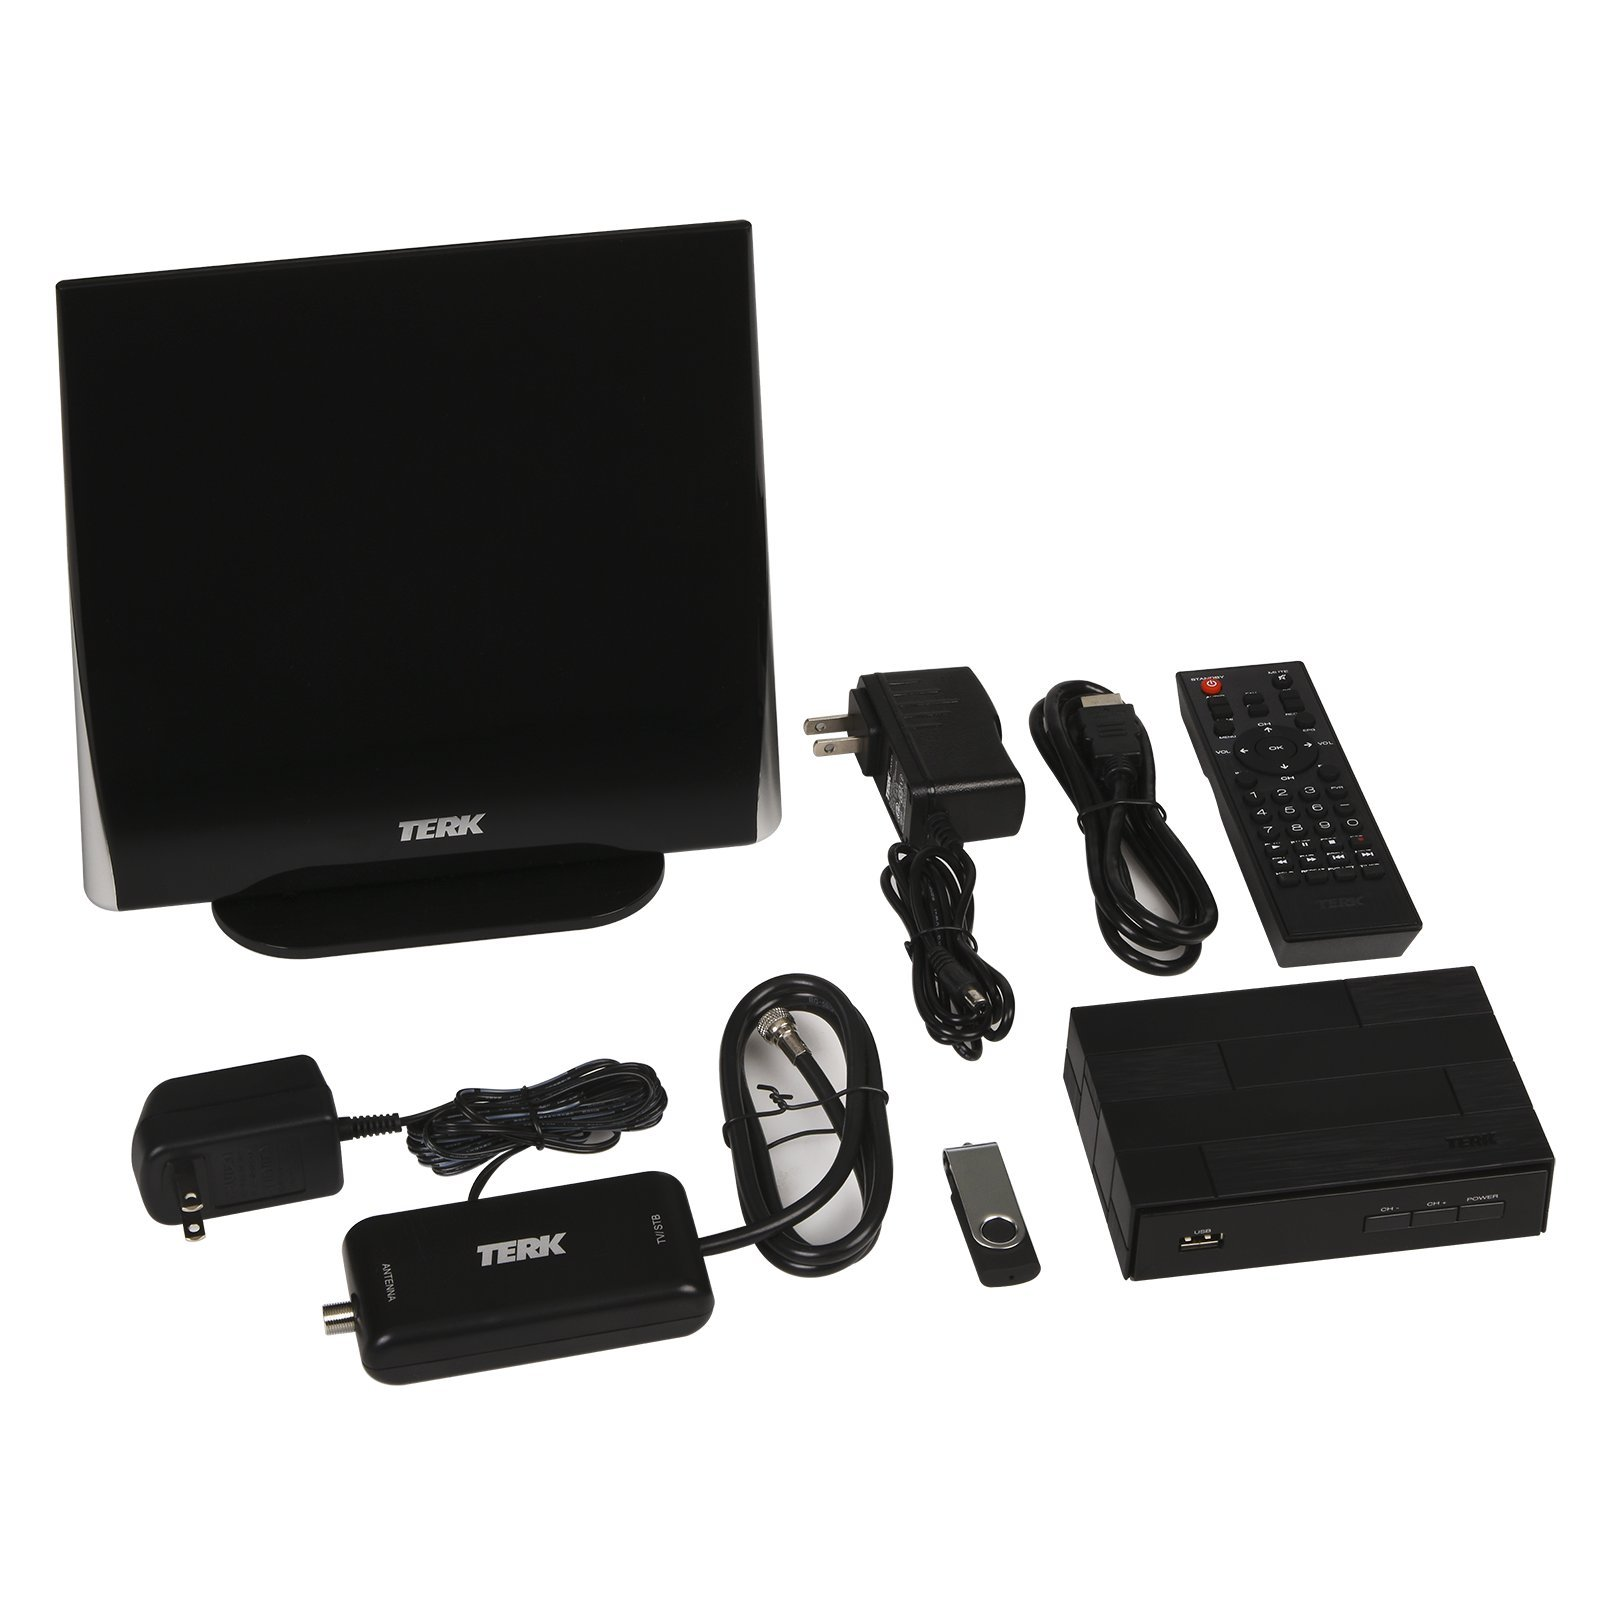 Terk Complete Cord Cutter Kit – Record LIVE TV with the Digital Converter Box & HDTV Antenna Bundle by Terk